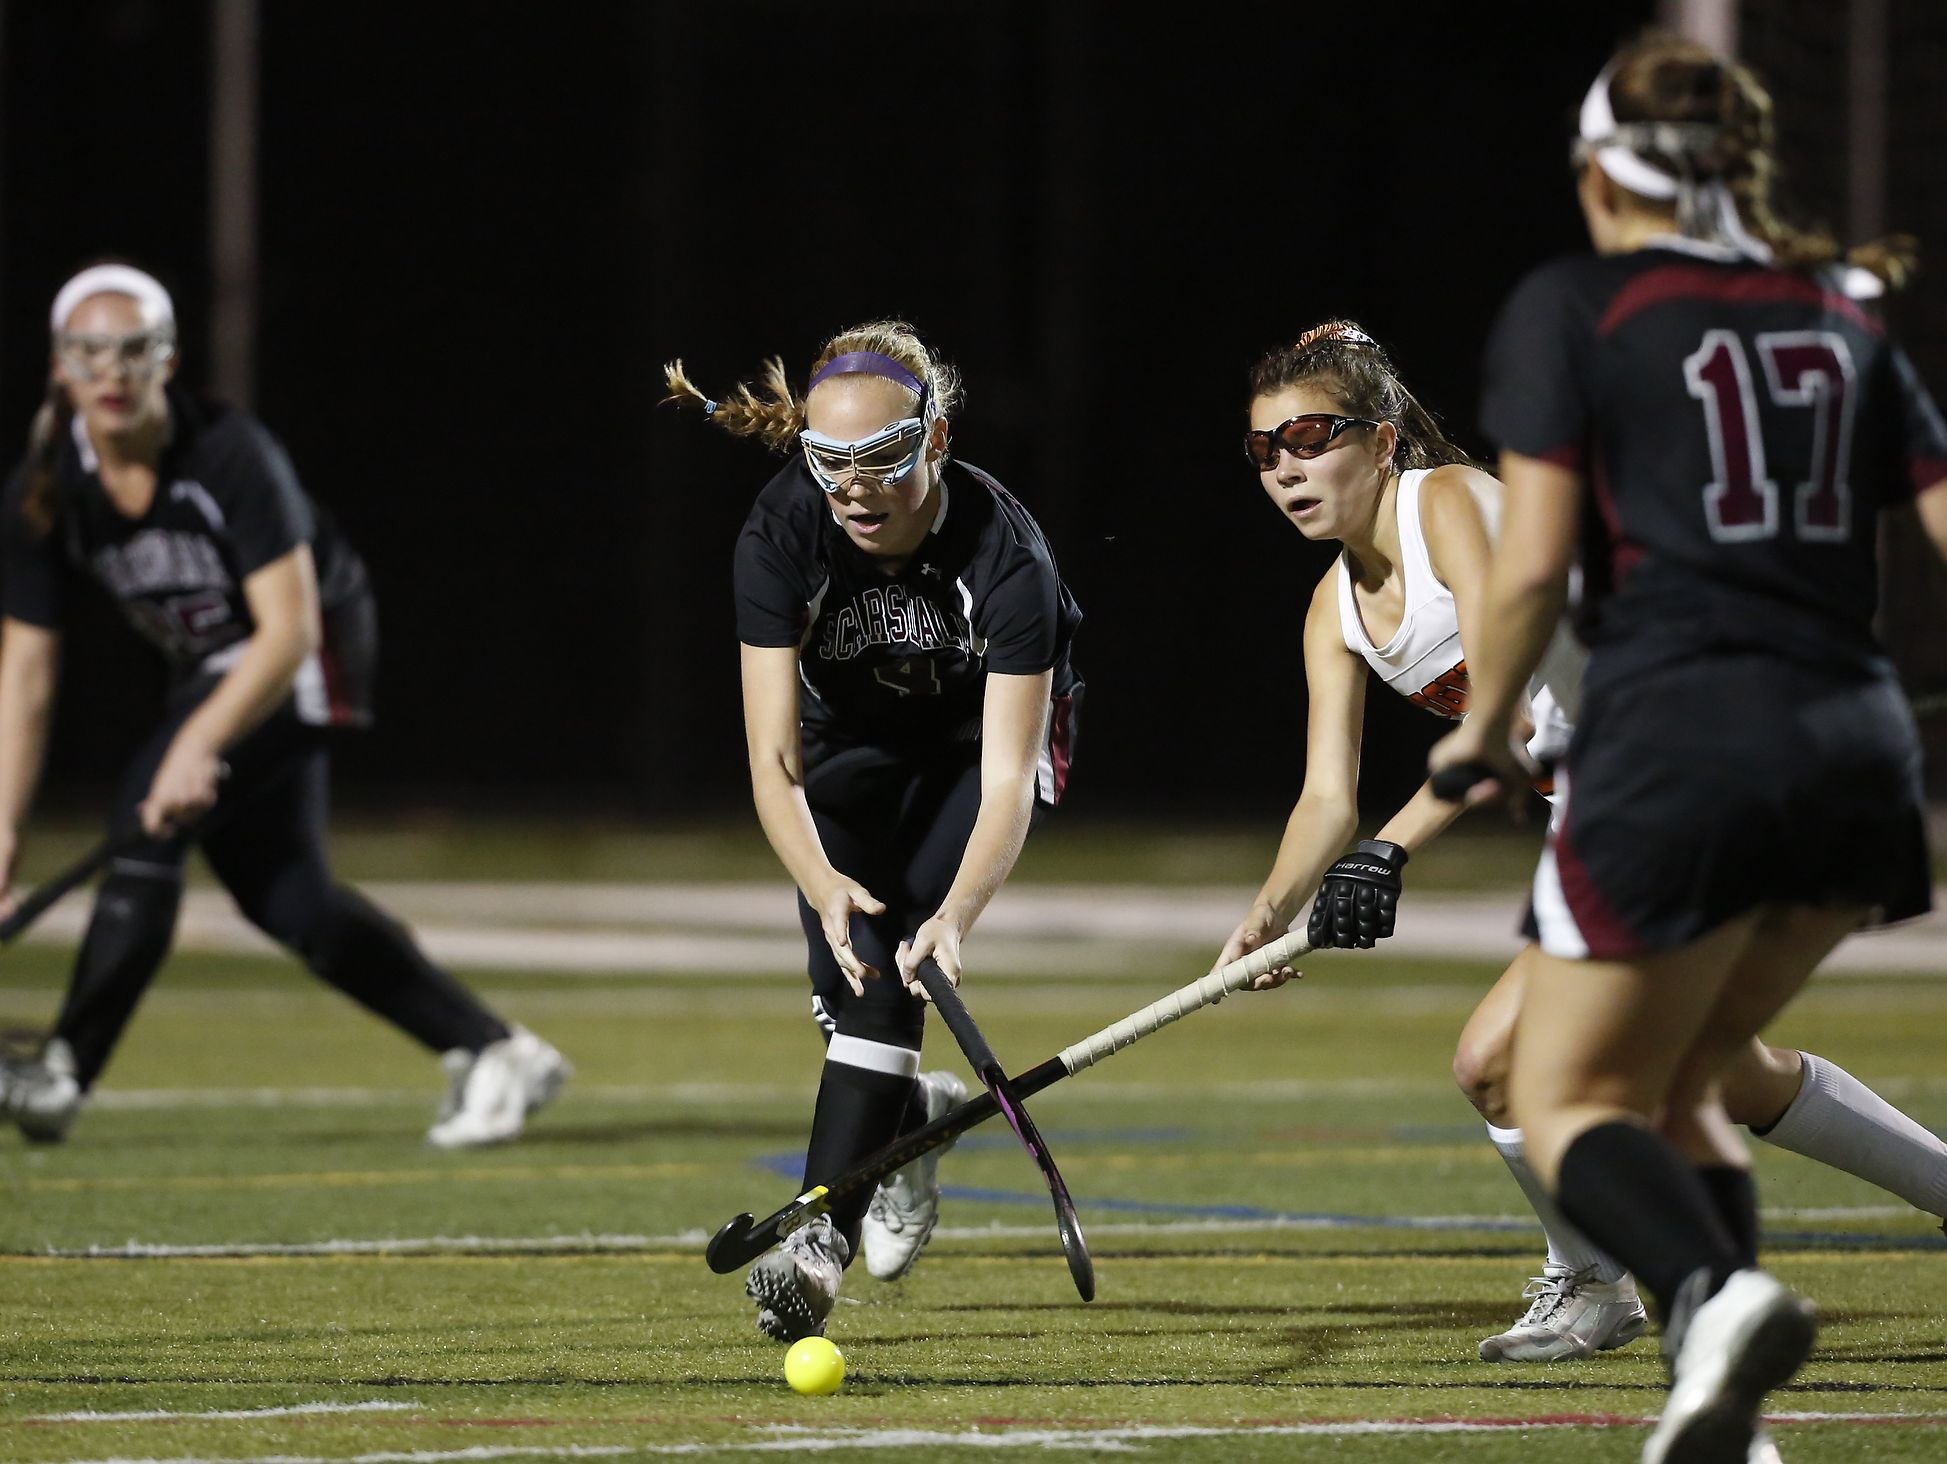 Scarsdale's Emma Coleman (4) reaches for the ball in their 2-0 win over mamaroneck in the Class A field hockey section finals at Brewster High School on Tuesday, November 1, 2016.